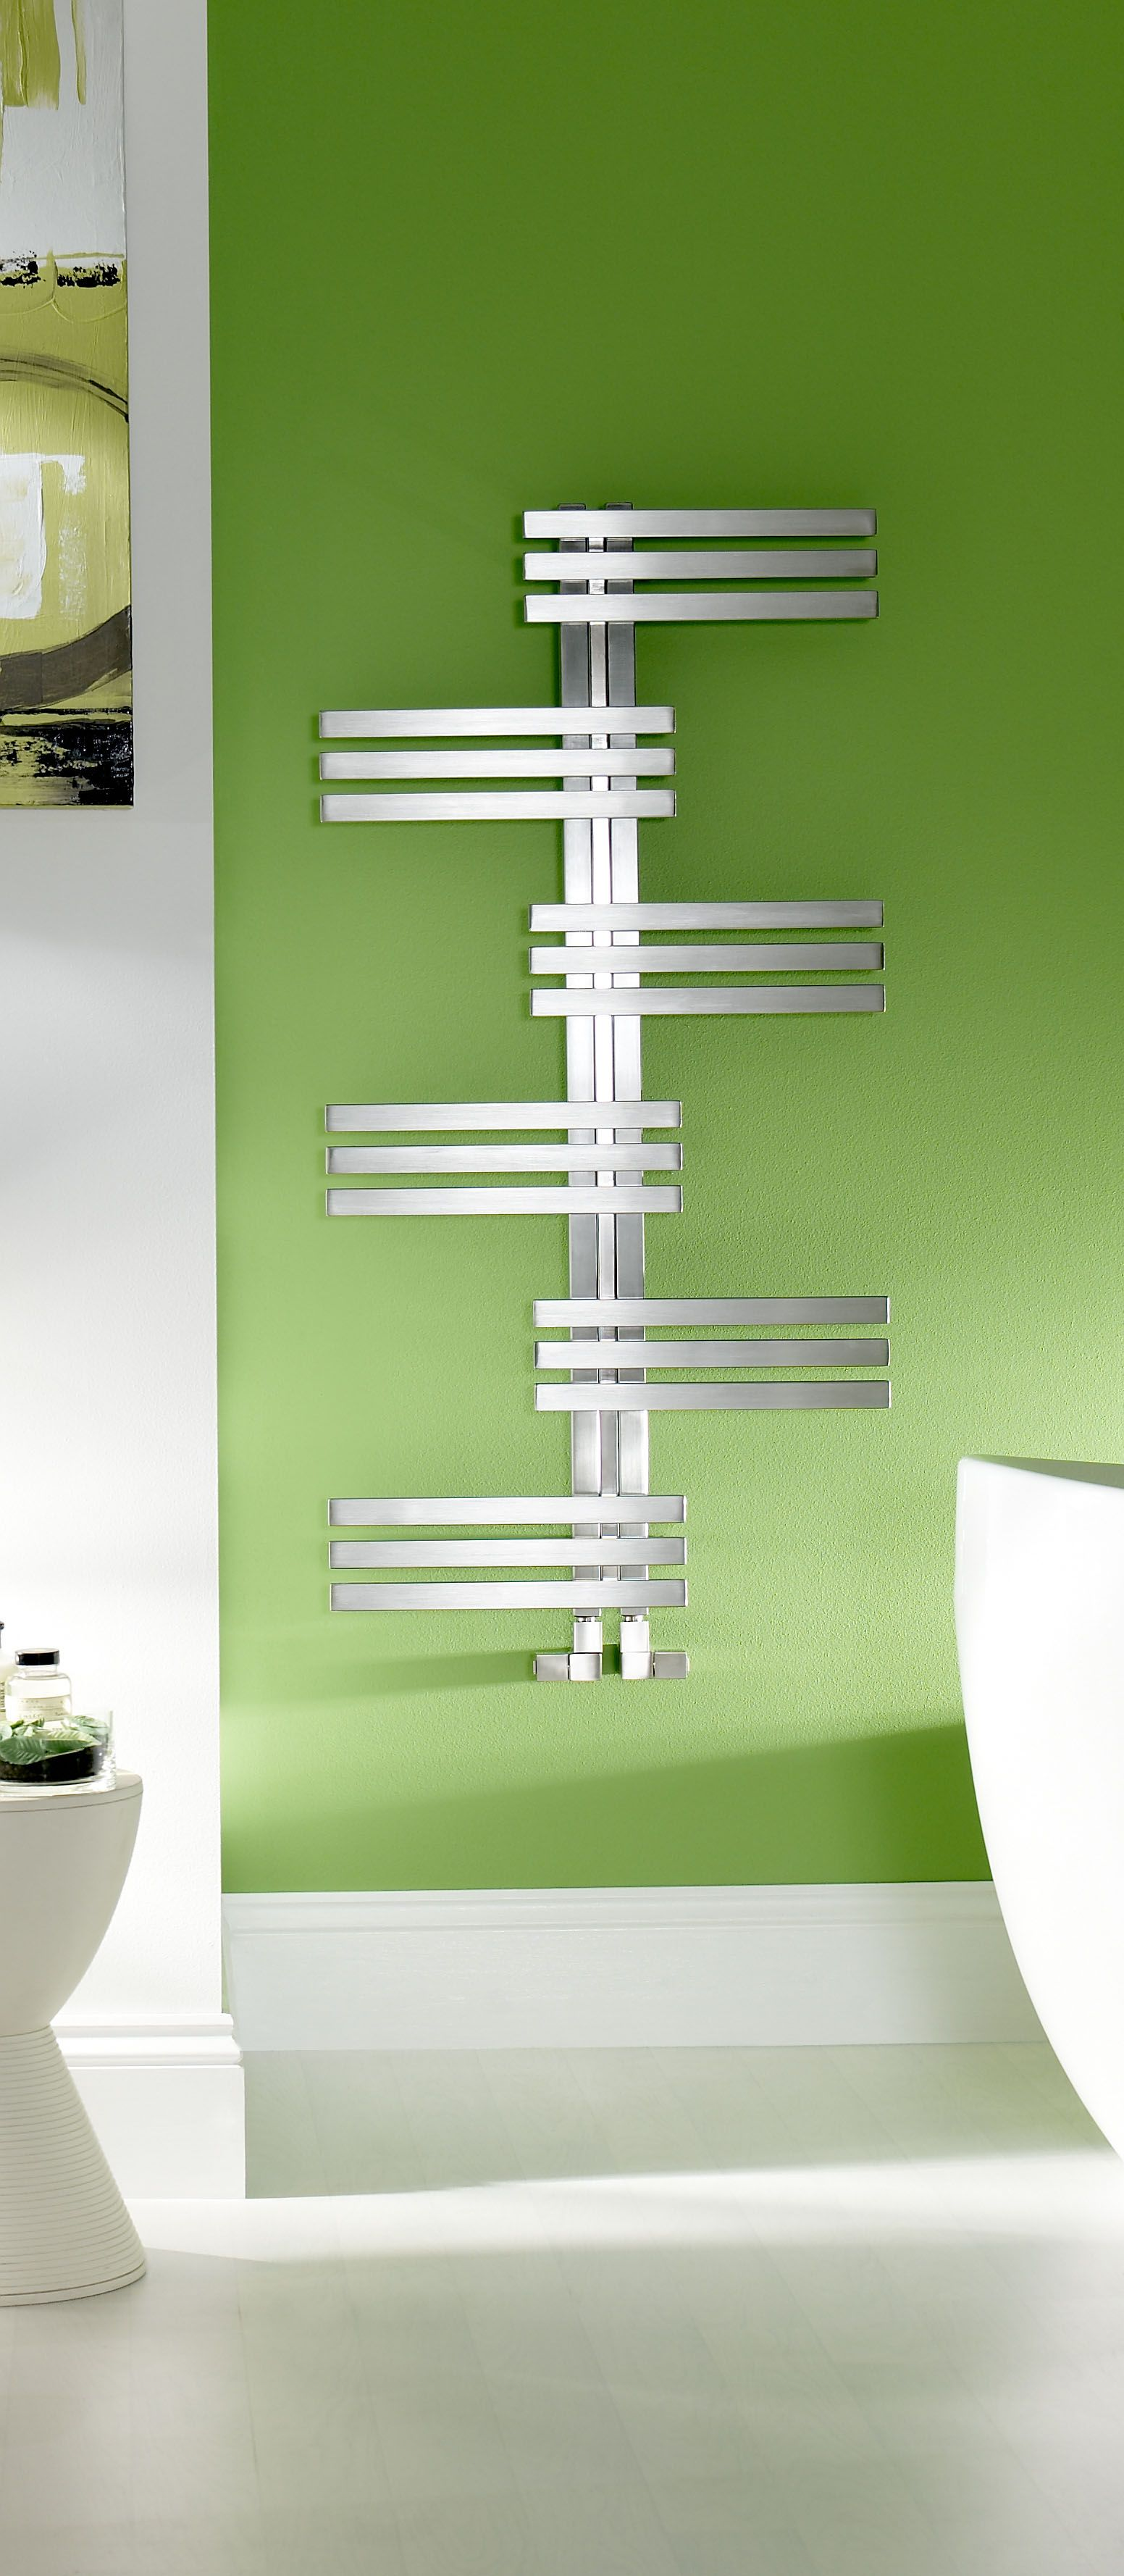 Beautiful Zehnder Keel Symmetrical Towel Radiator